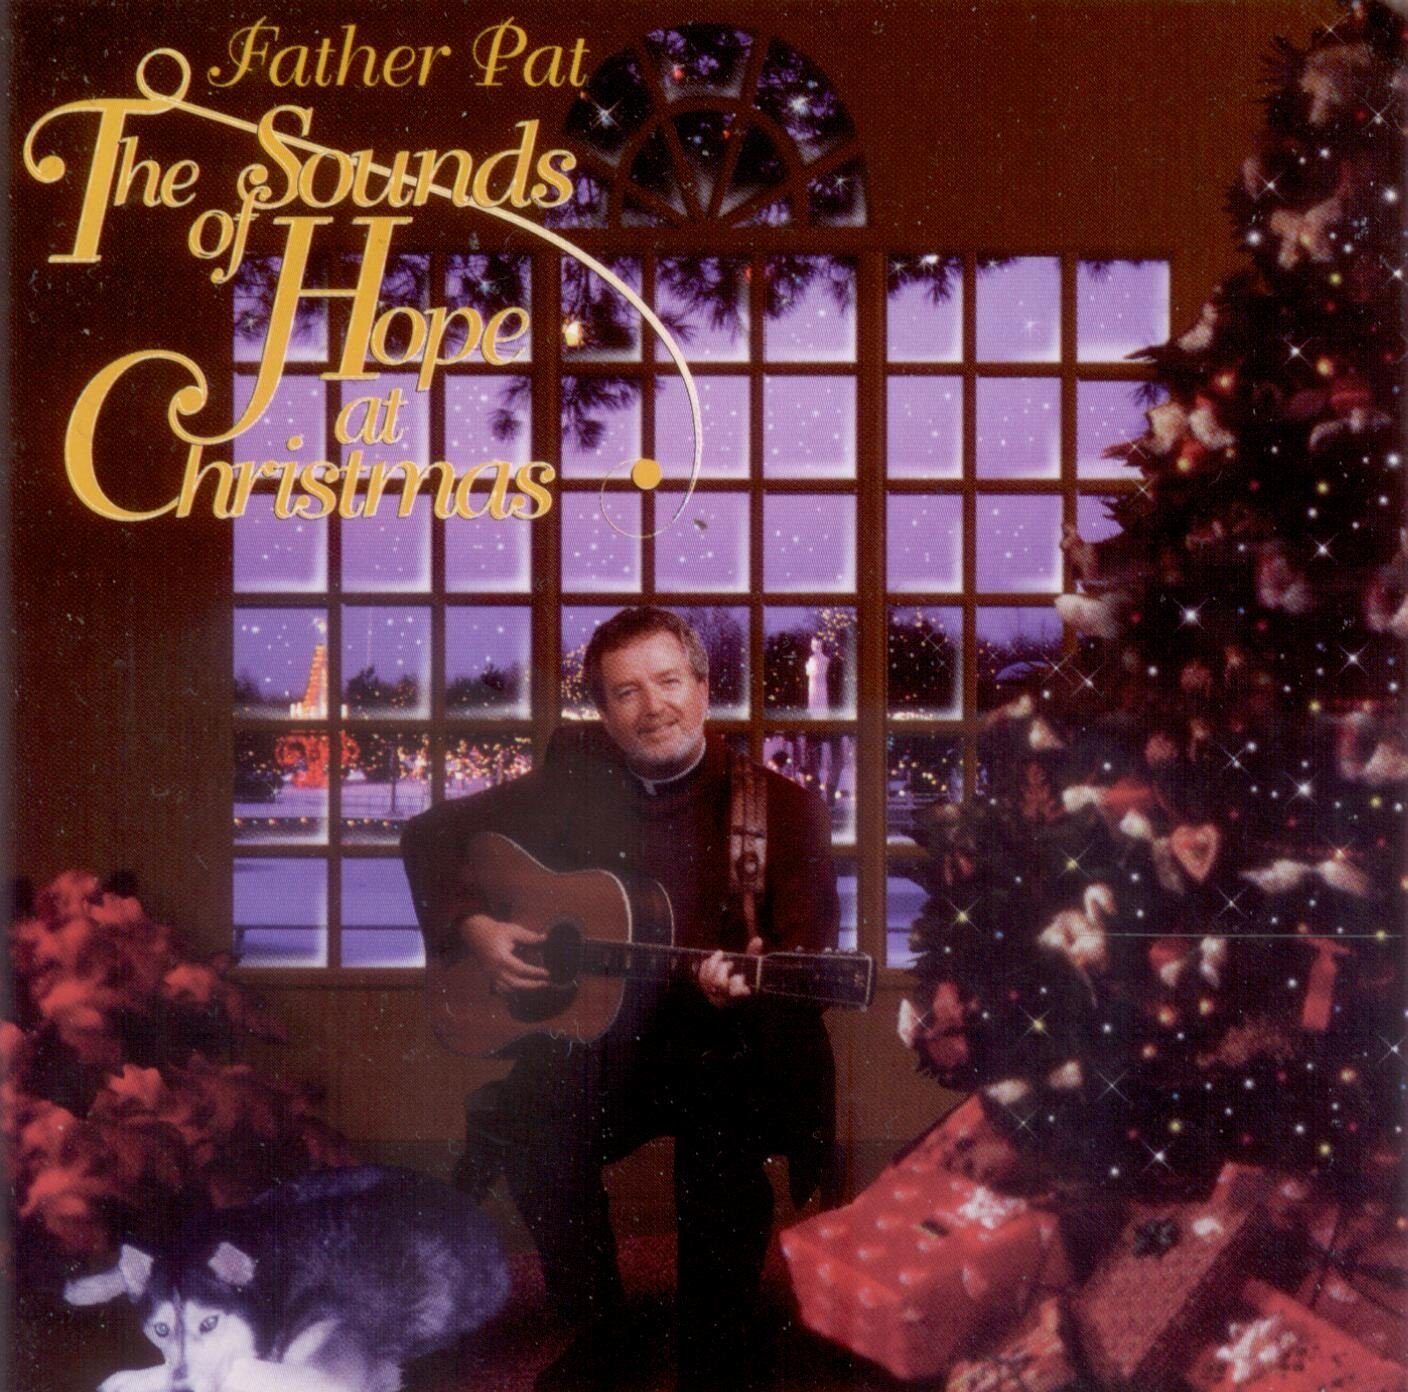 Hope At Christmas.The Sounds Of Hope At Christmas